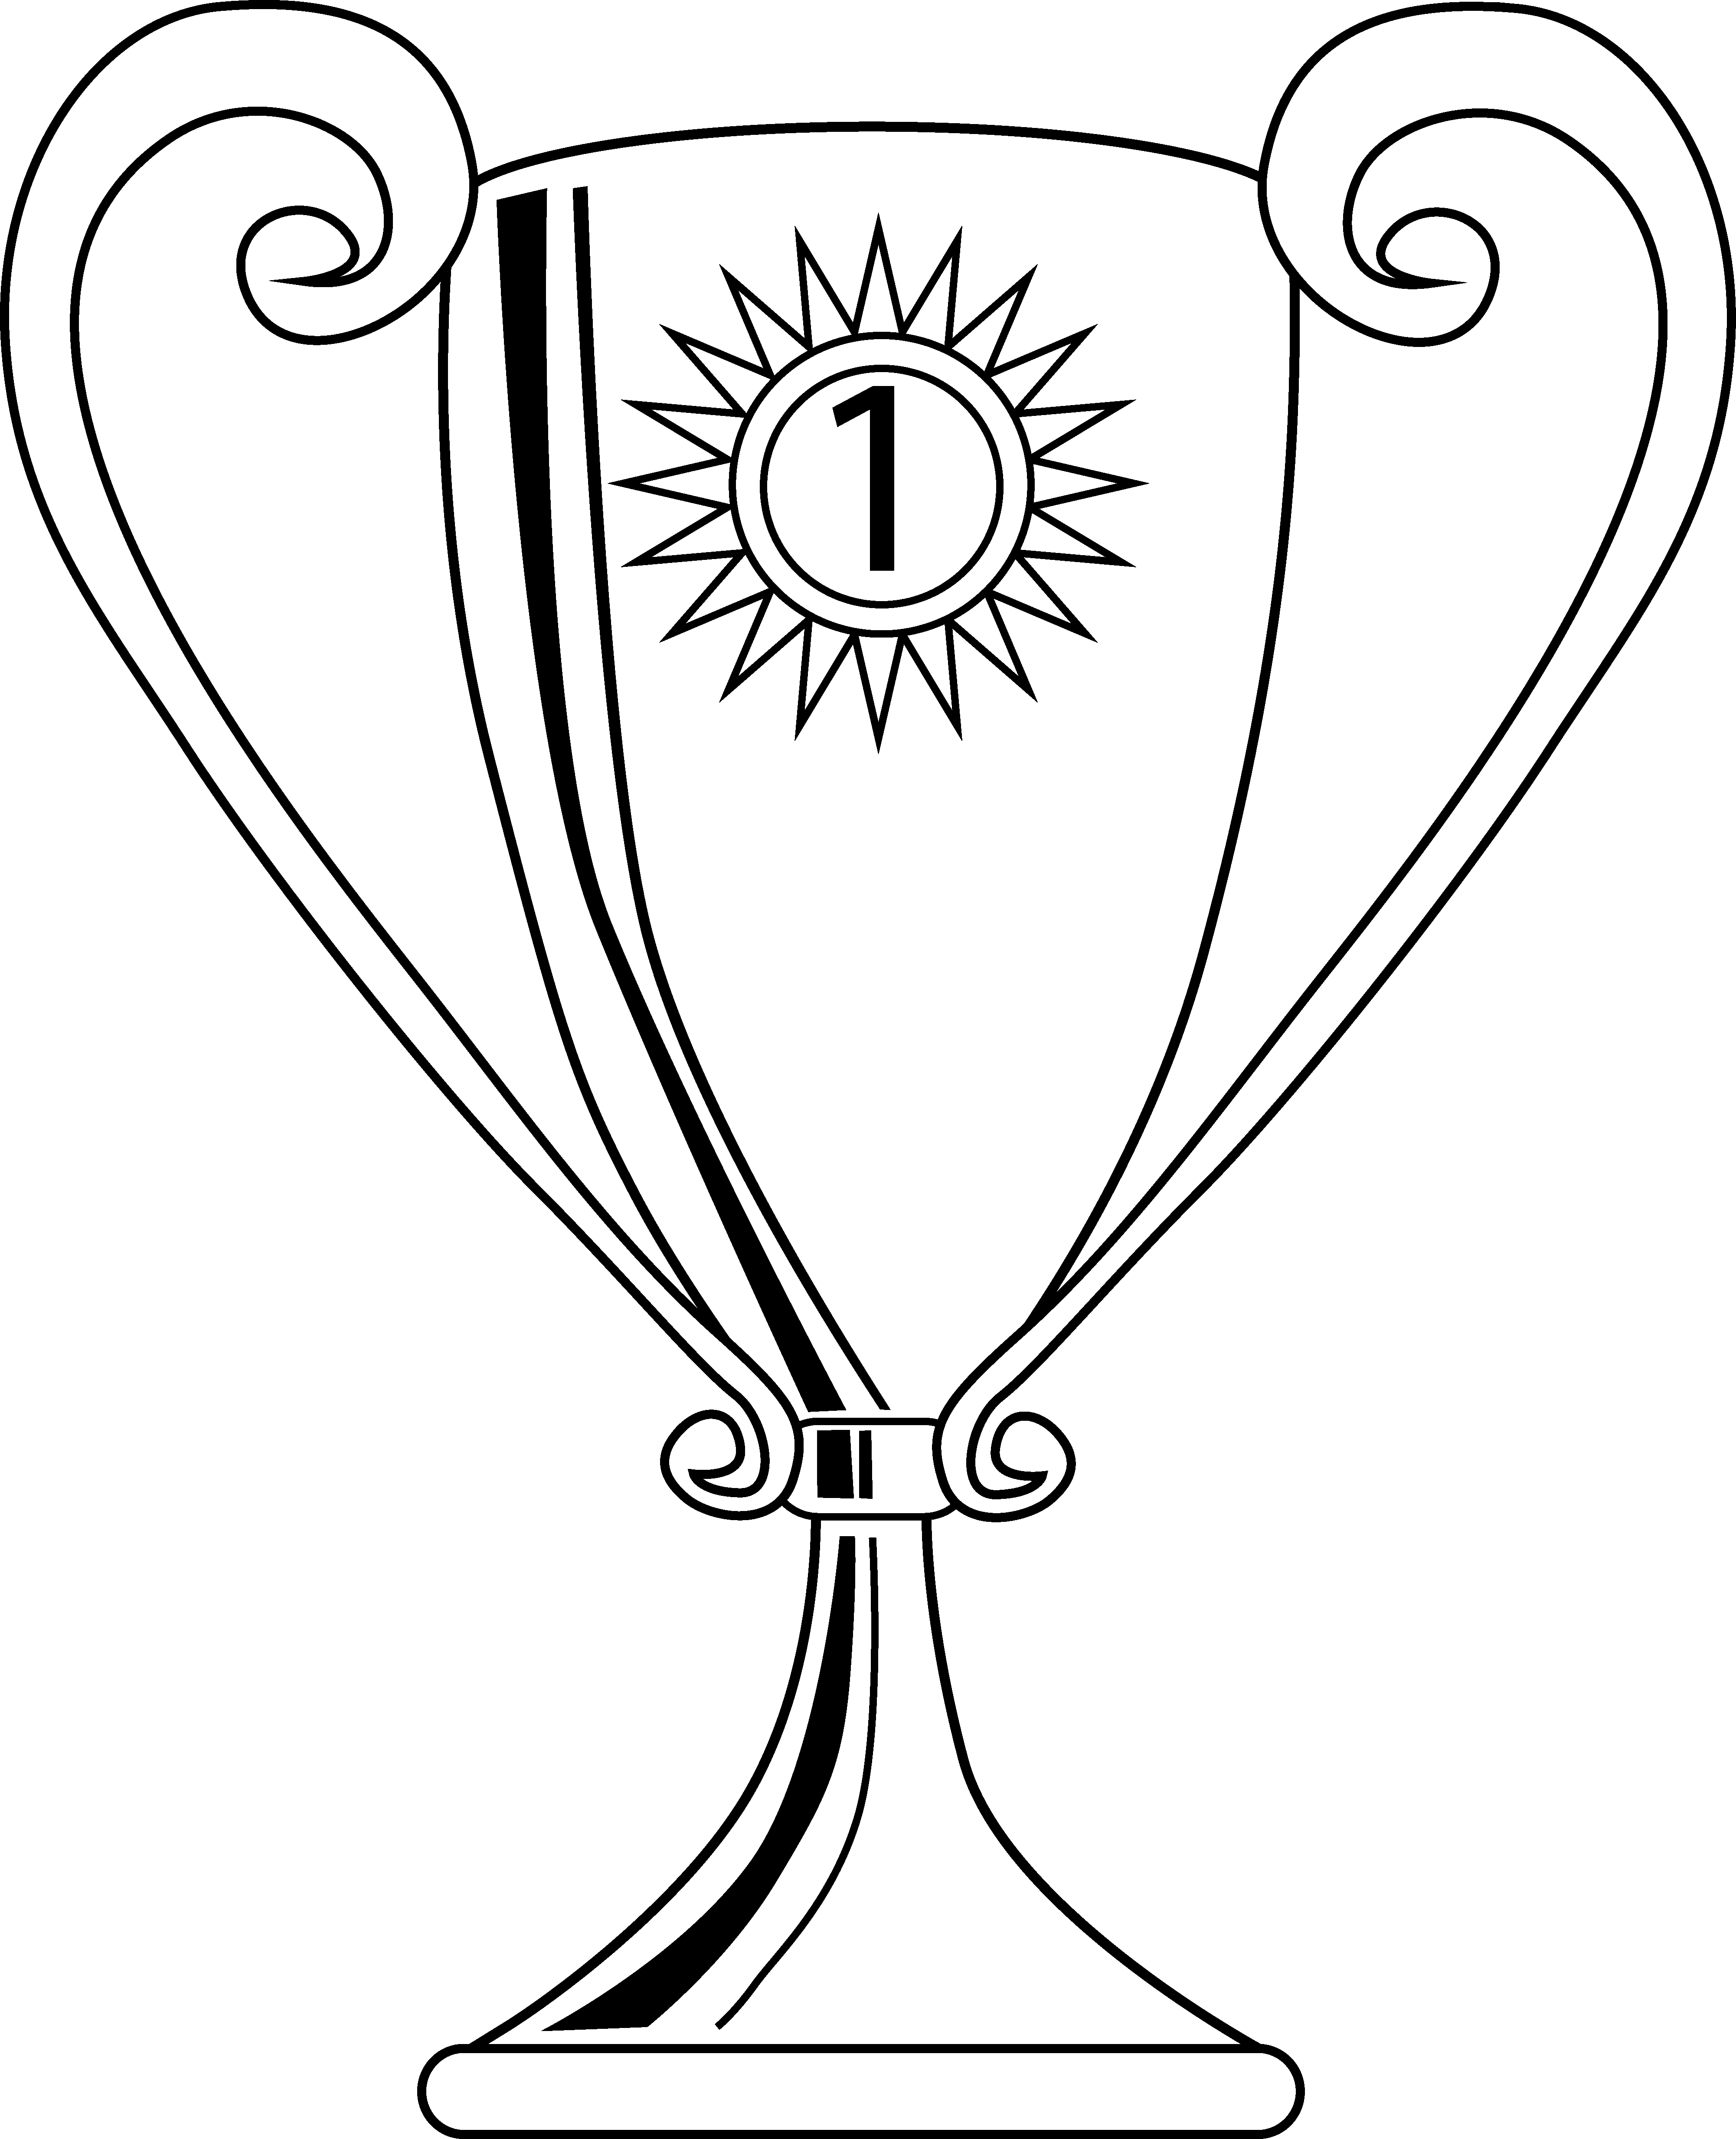 image library download Winning coloring page free. Trophy clipart black and white